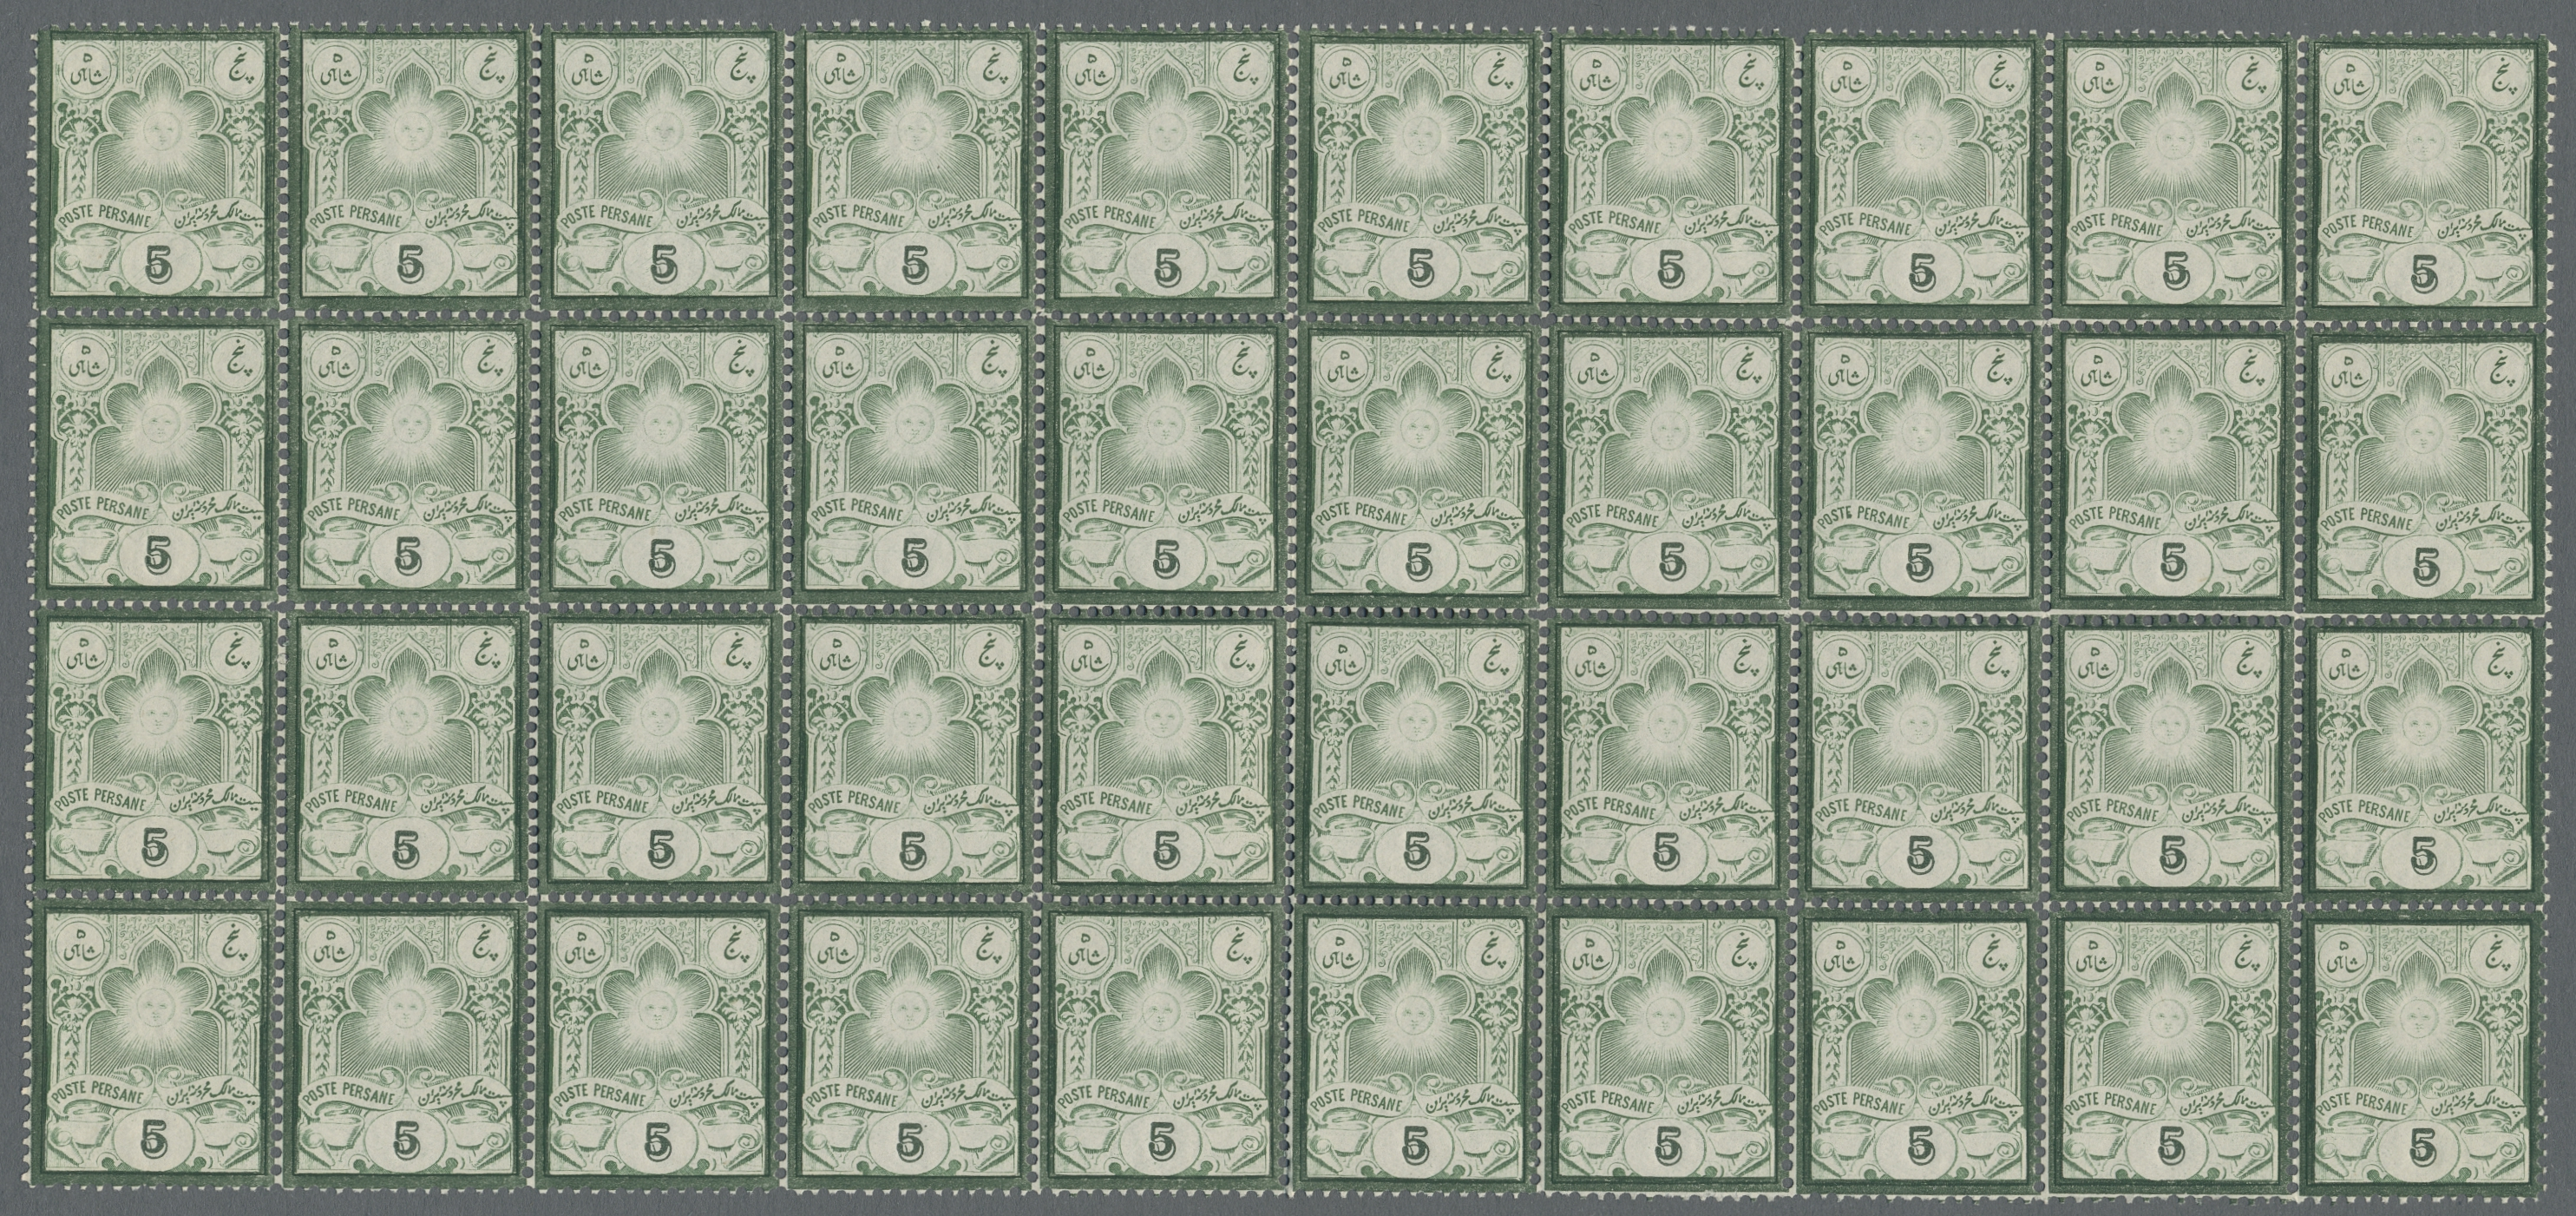 Lot 13490 - iran  -  Auktionshaus Christoph Gärtner GmbH & Co. KG Sale #48 collections Overseas  Airmail / Ship mail & Thematics